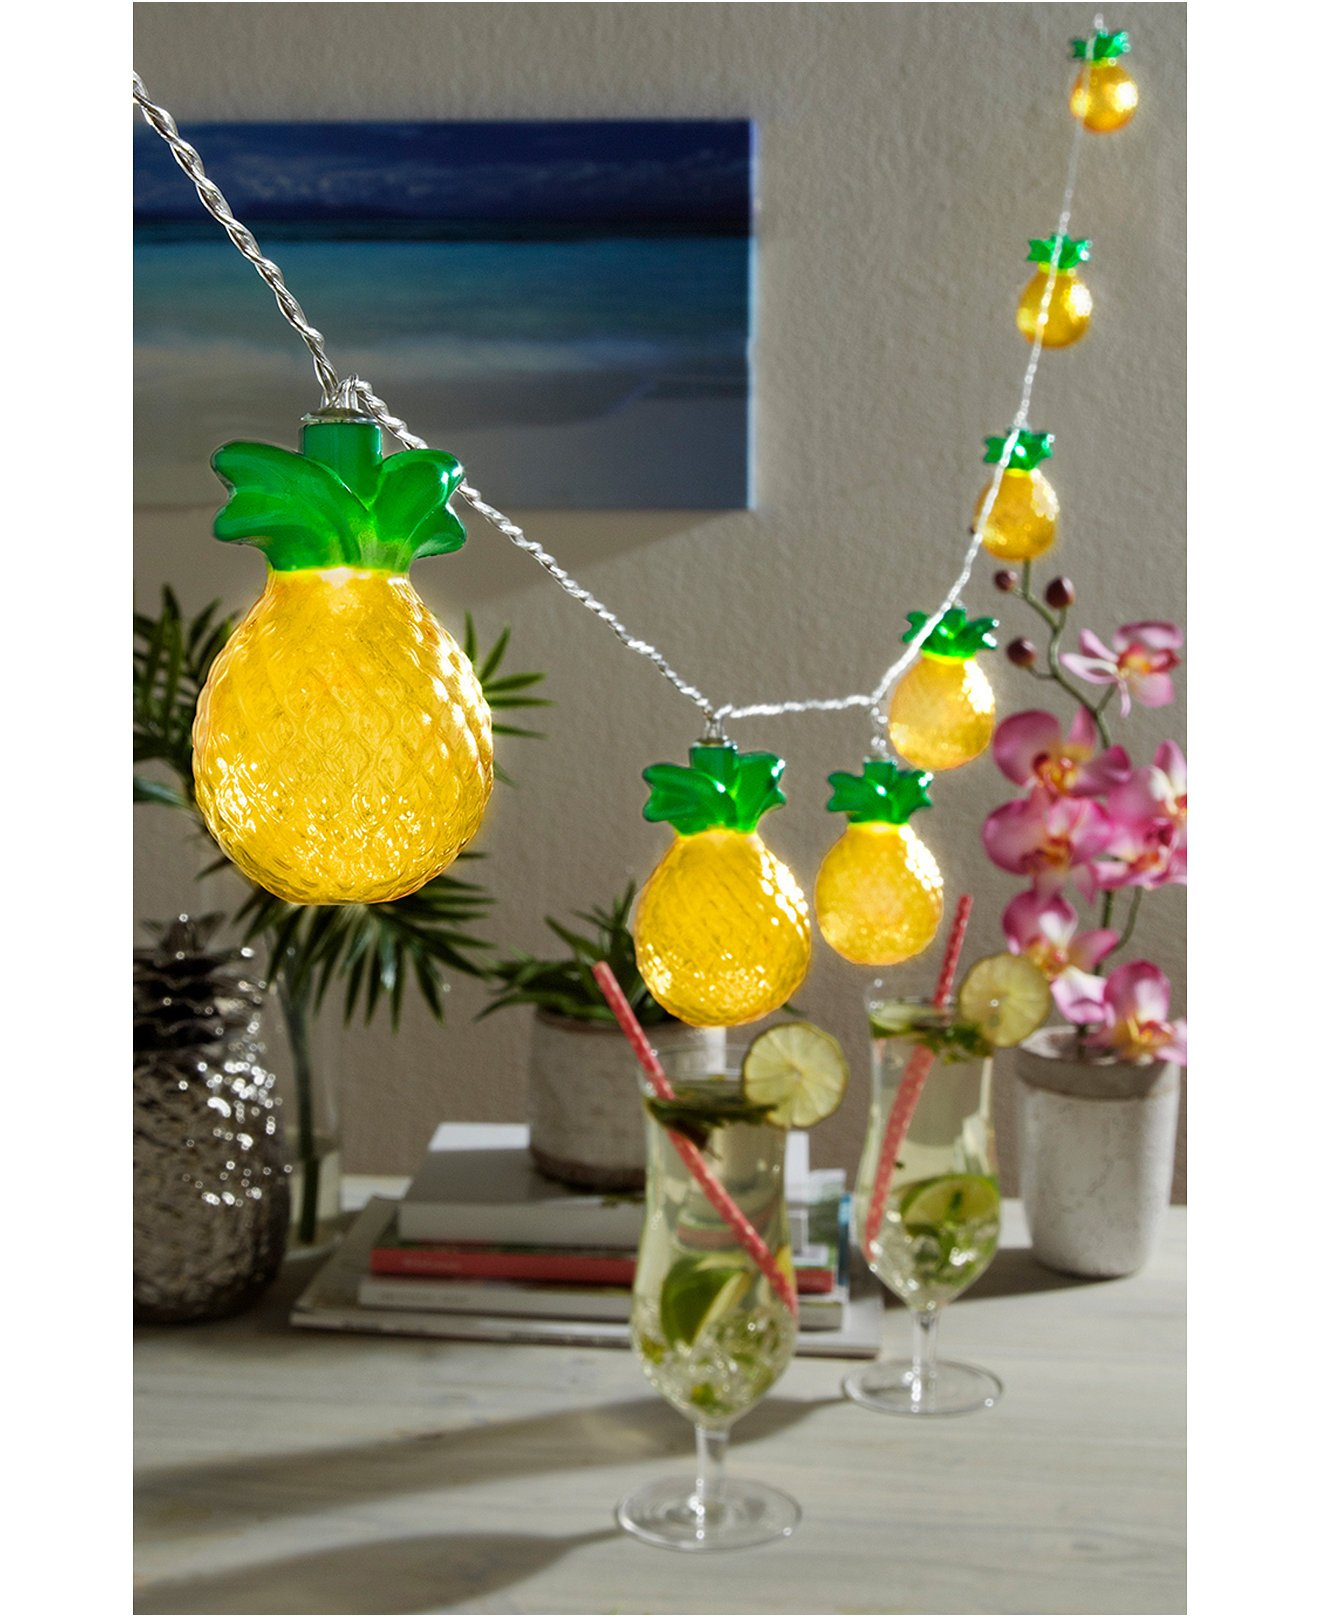 Studio Mercantile Novelty 10-ft Pineapple LED String Lights, Set of 2 by Studio Mercantile